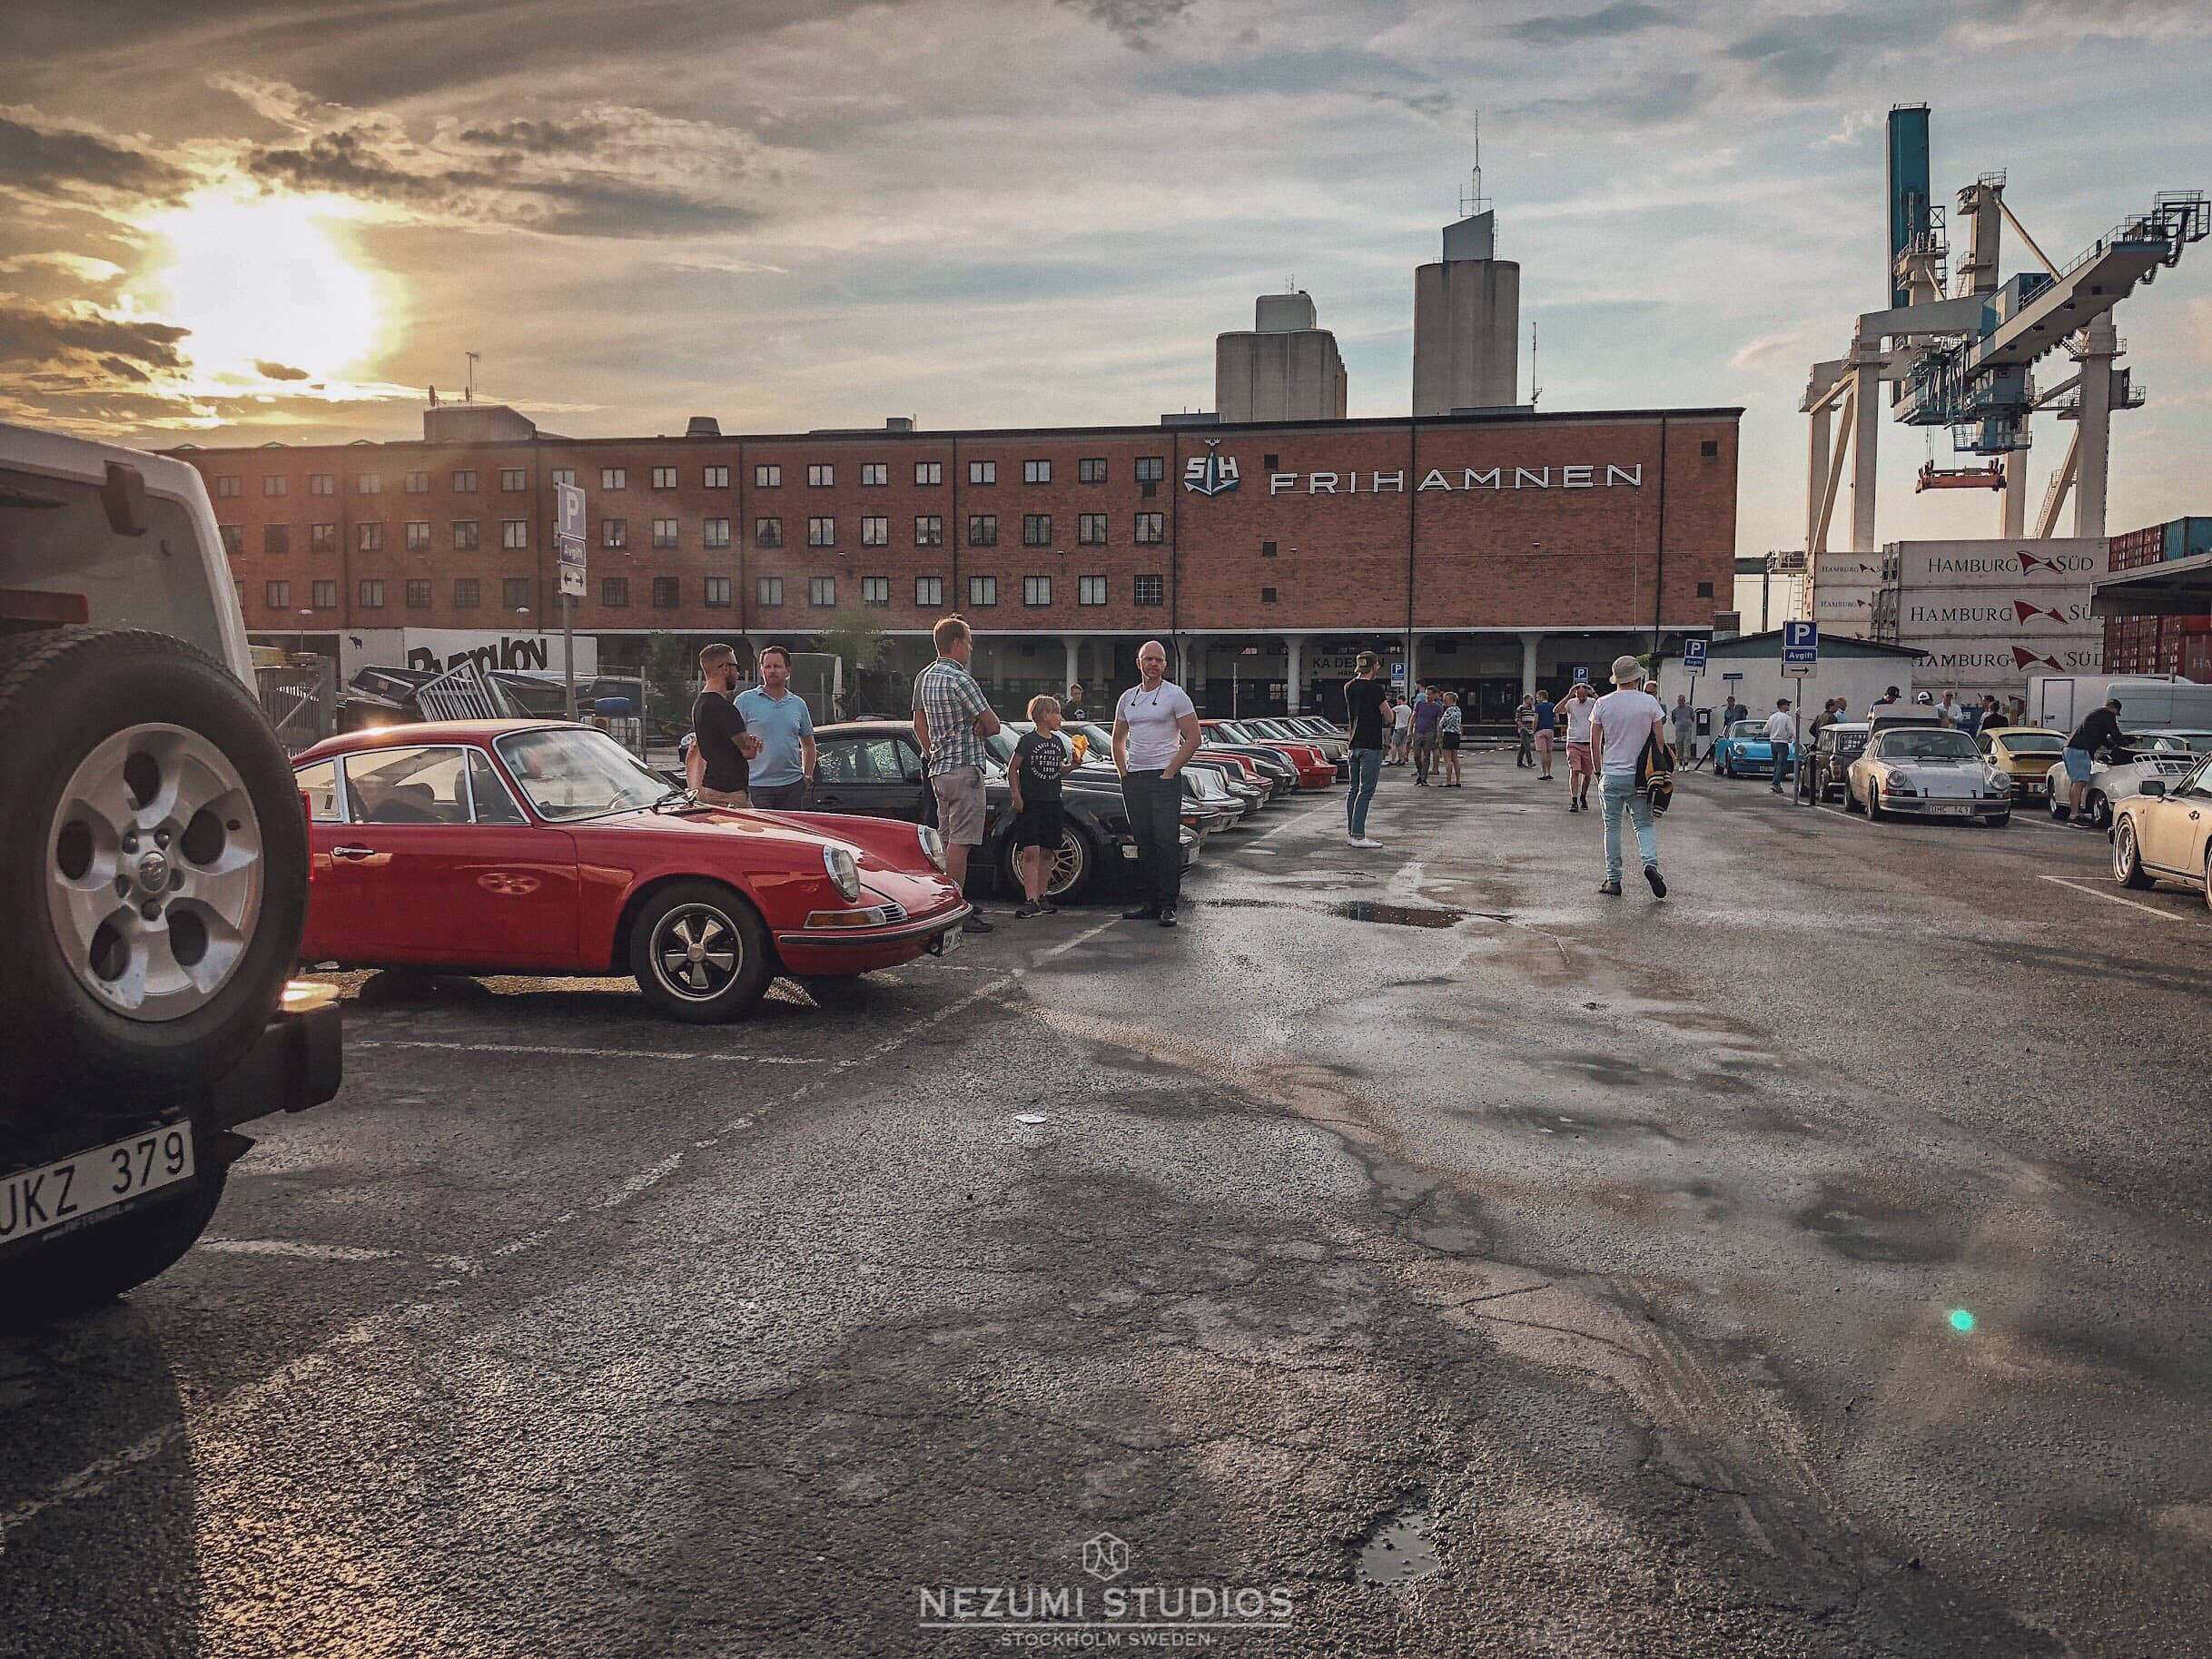 Tunnel Raiders , a and Nezumi Studios classic sportscar event , photo by founder David Campo